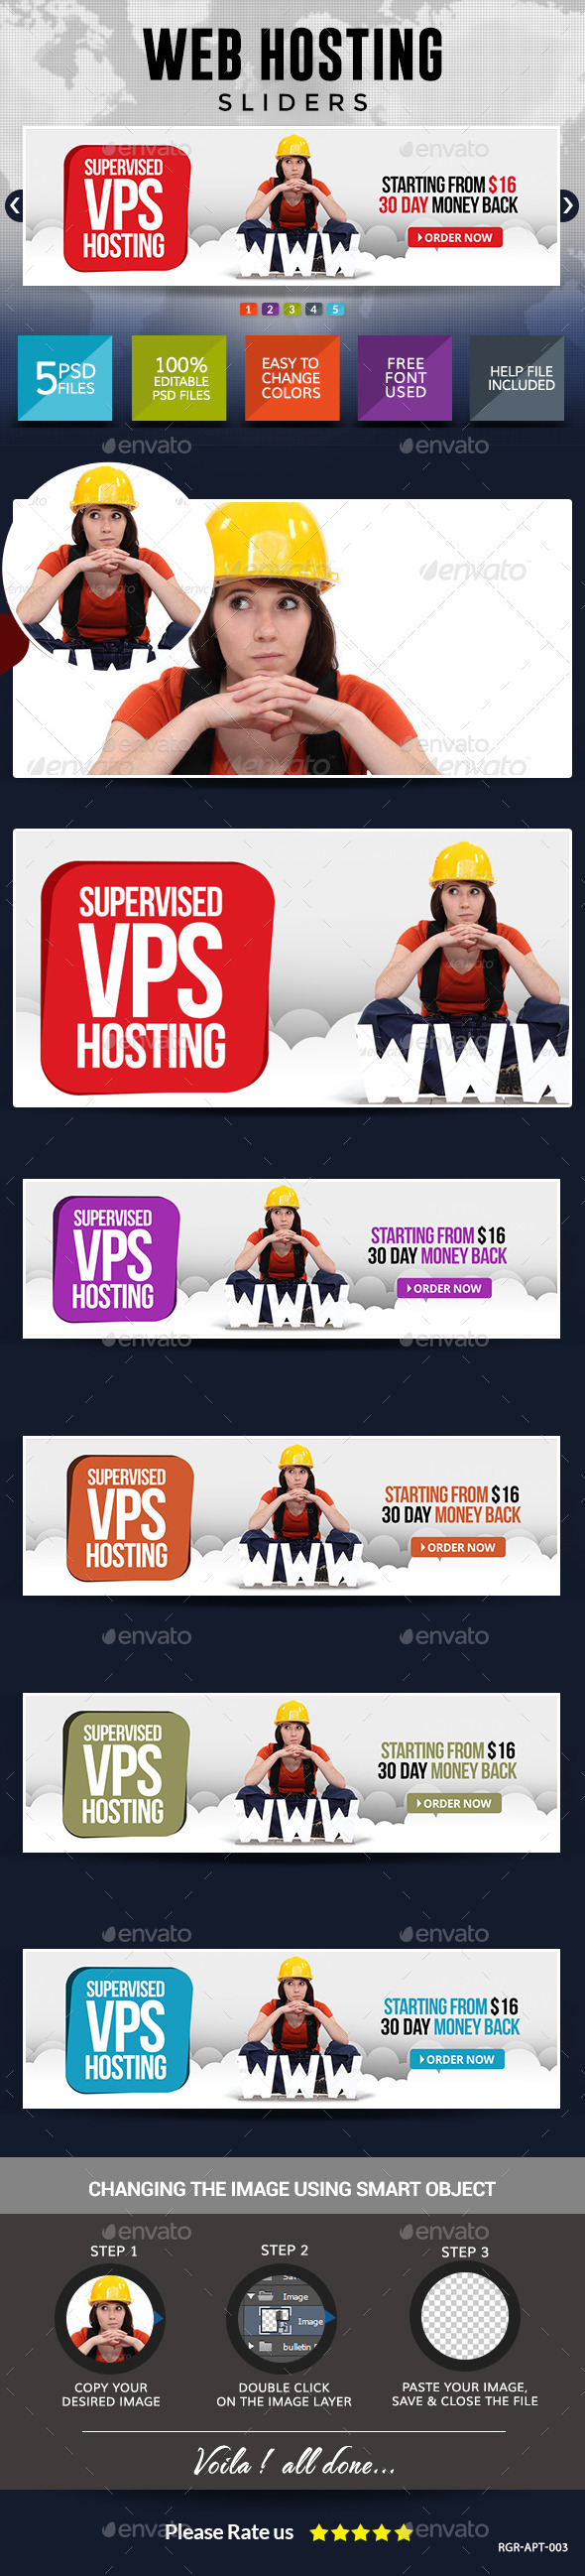 GraphicRiver Web Hosting Slider Images 8834570